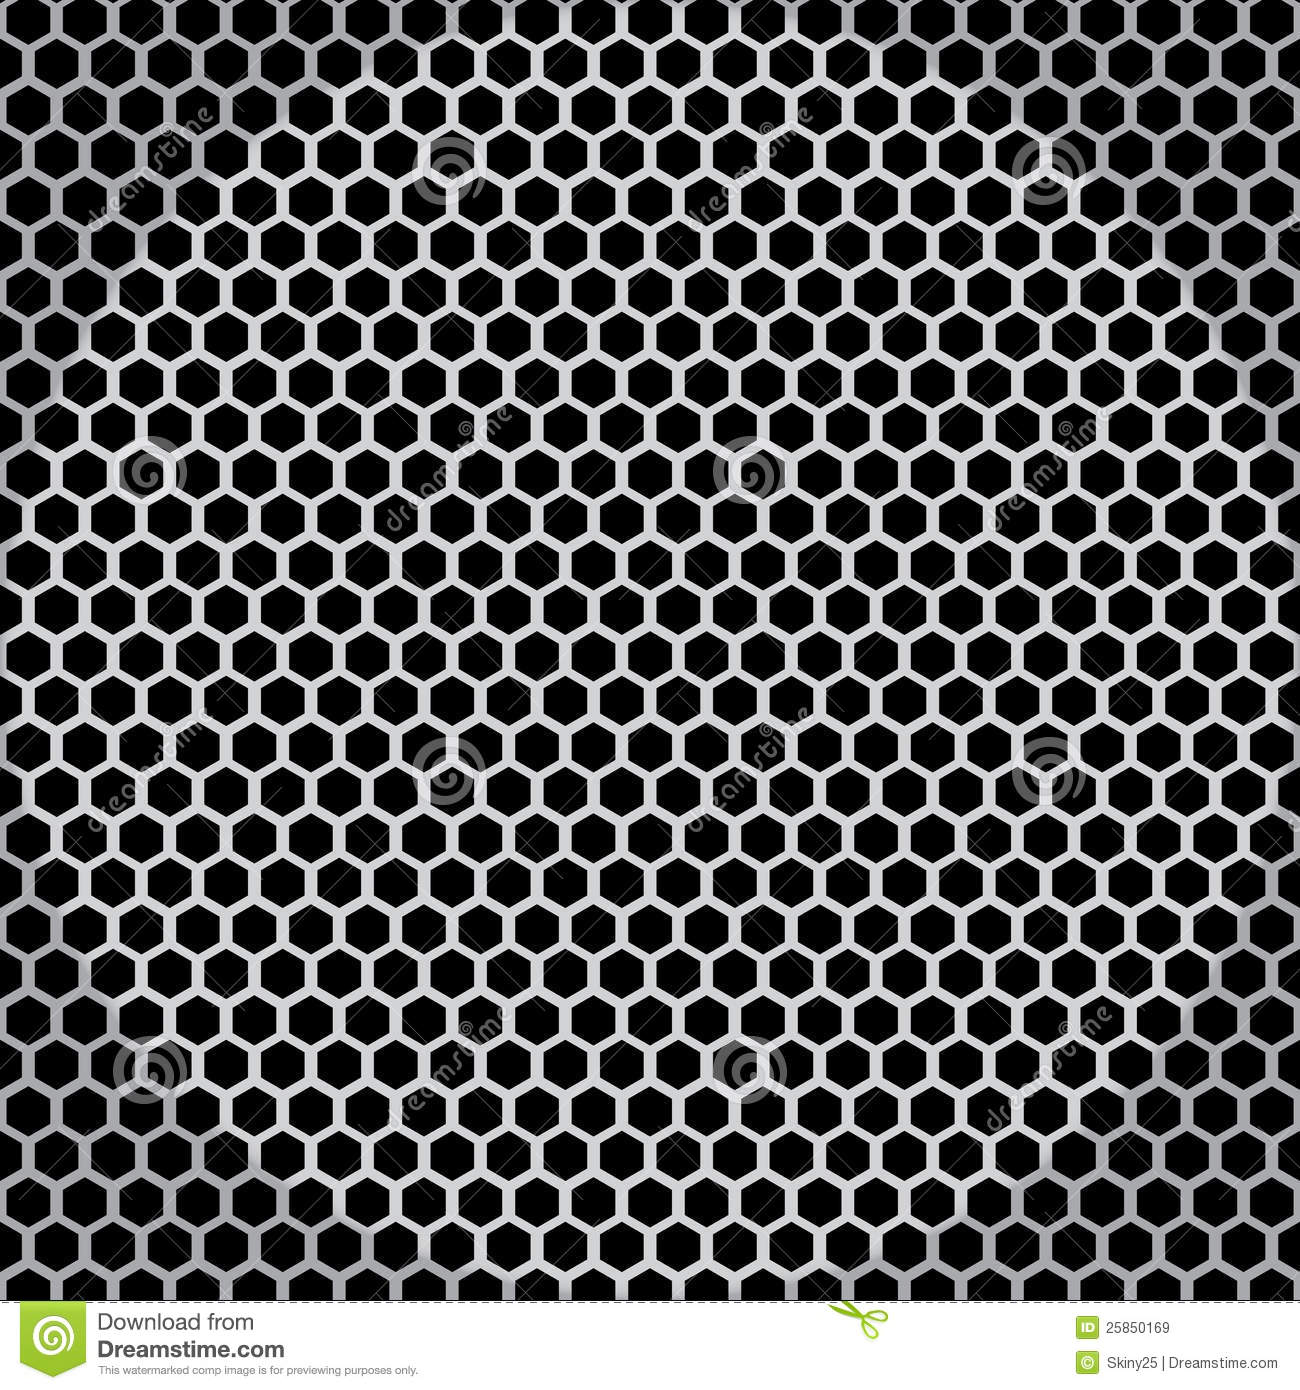 Metal Net Seamless Texture Royalty Free Stock Images ...